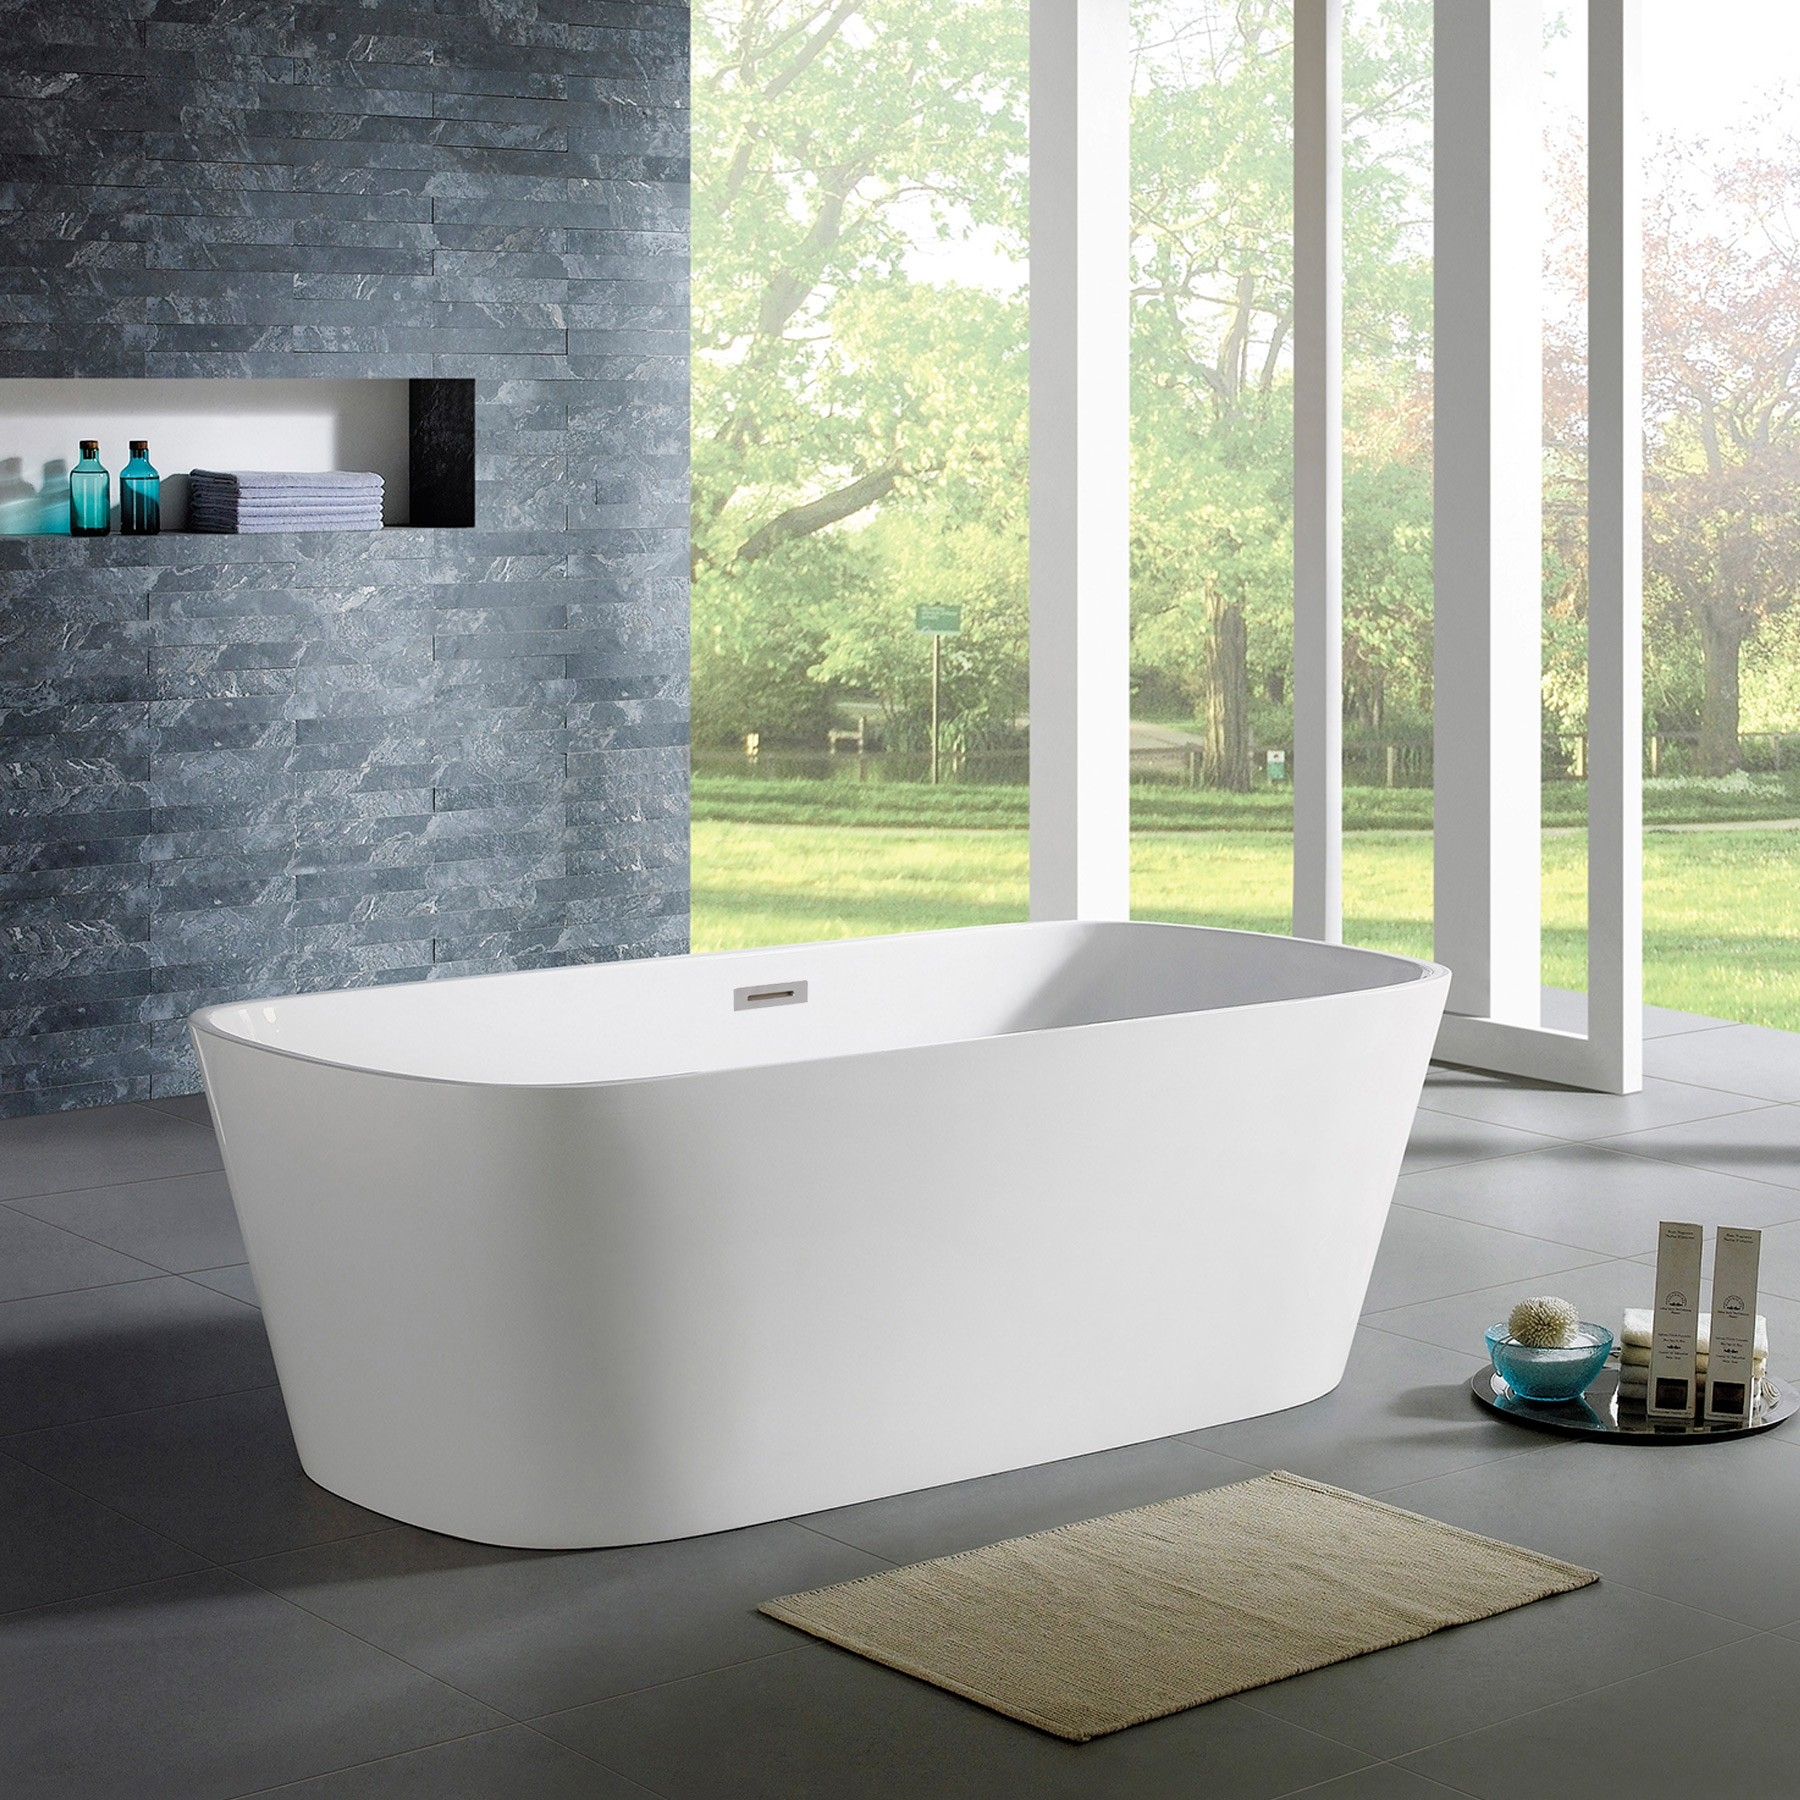 bty w norris standing rectangle free acrylic white bathtub tub freestanding modern bath